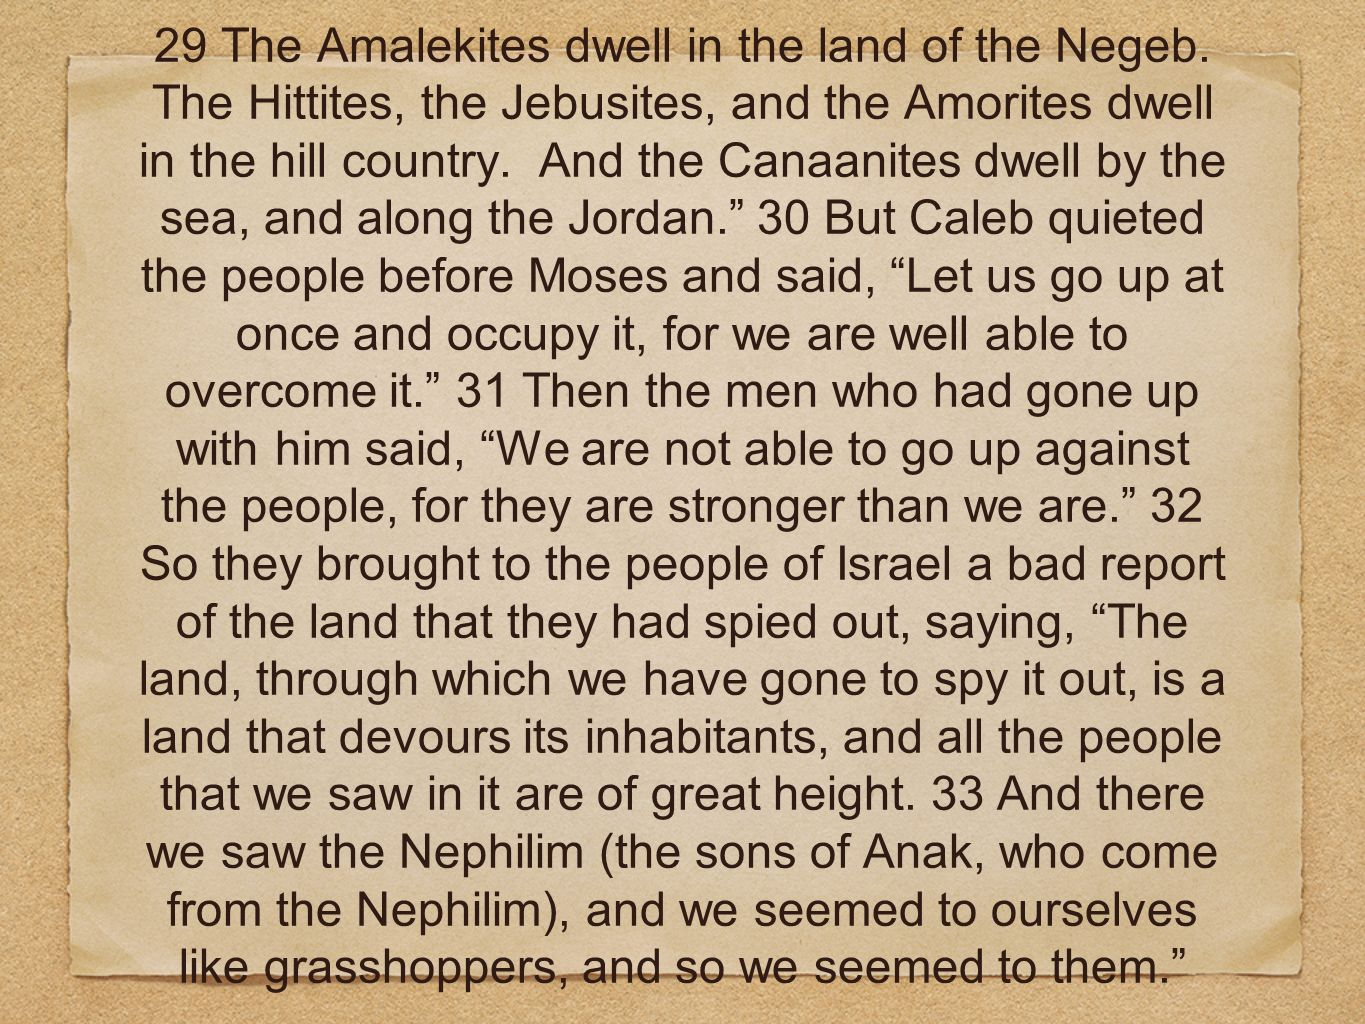 29 The Amalekites dwell in the land of the Negeb